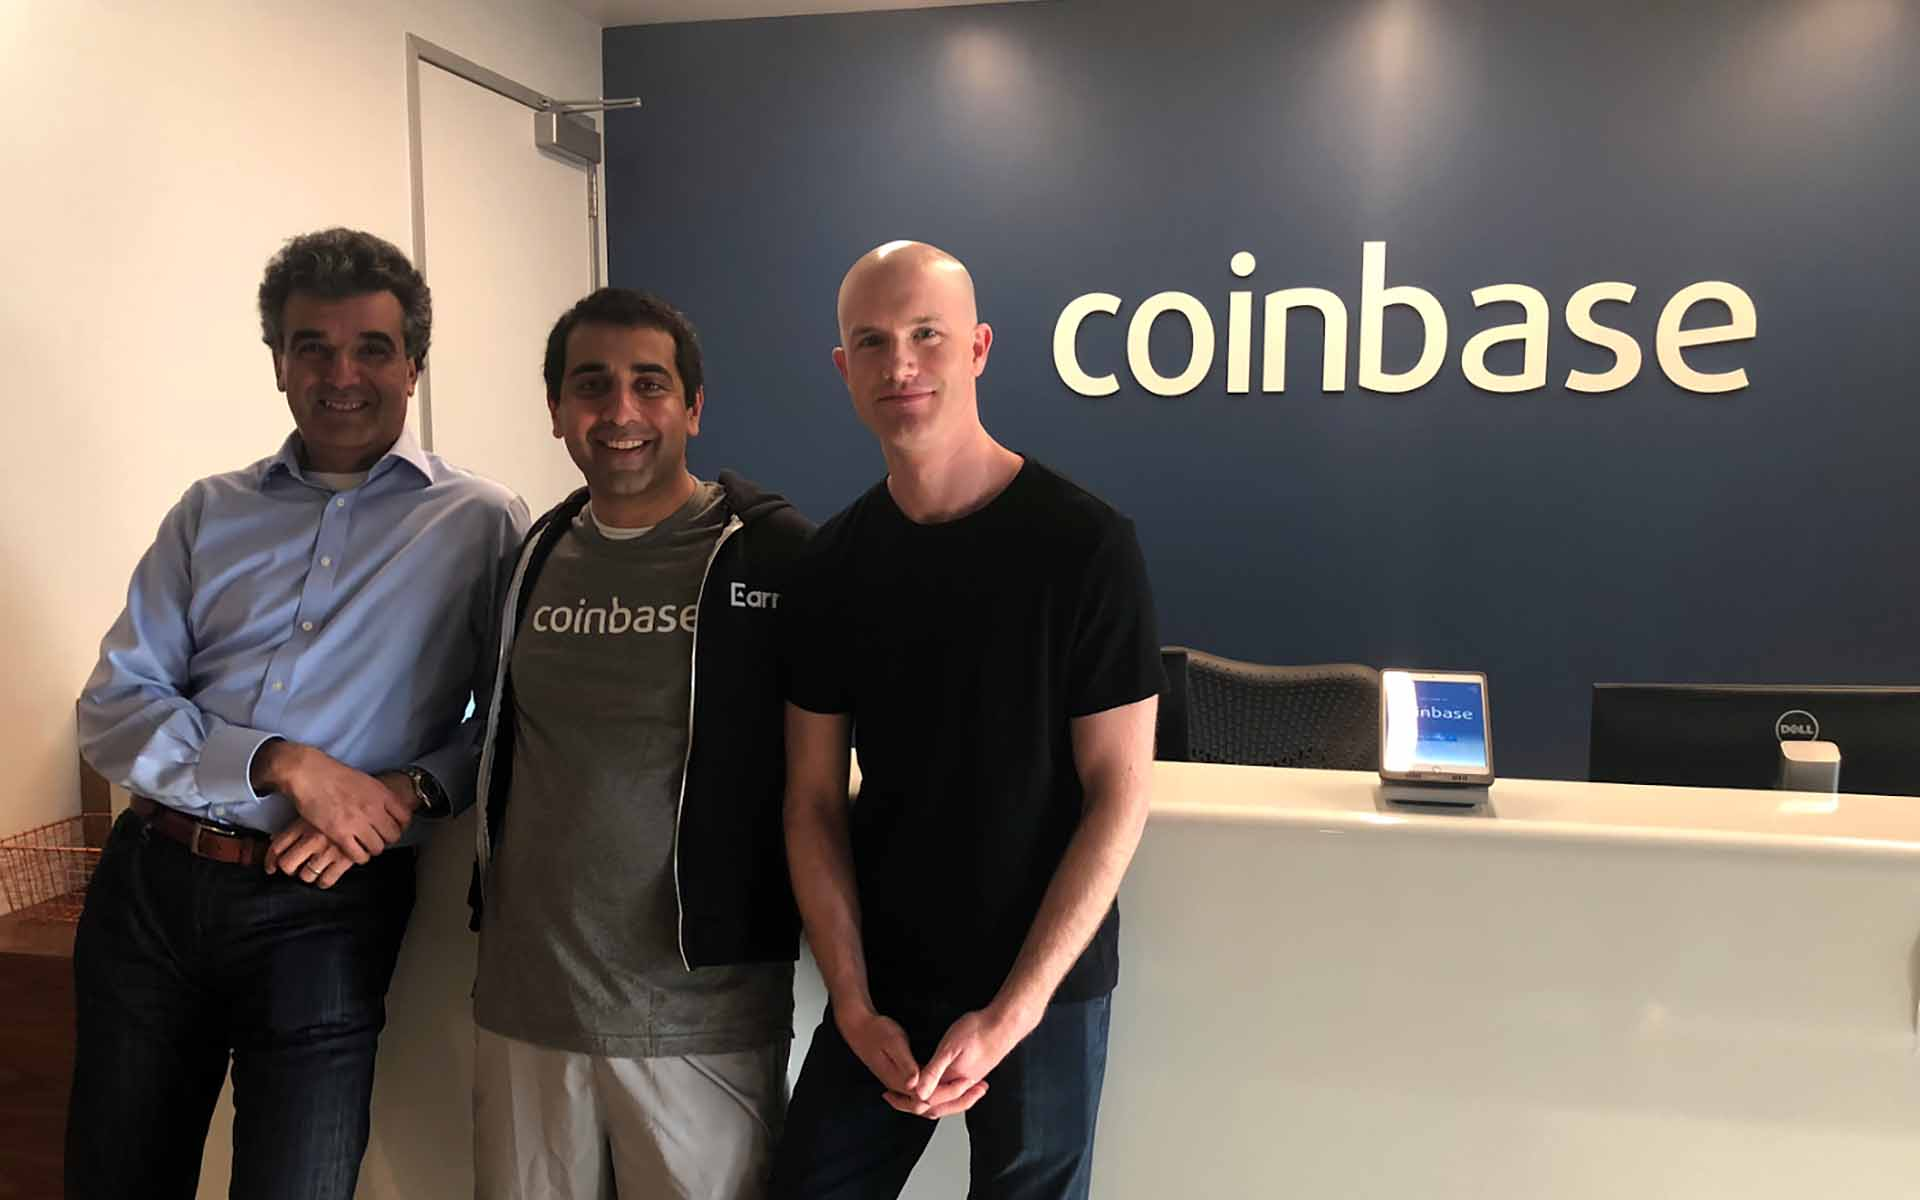 Coinbase Acquires Earn.com, Hires Superstar CTO Balaji Srinivasan